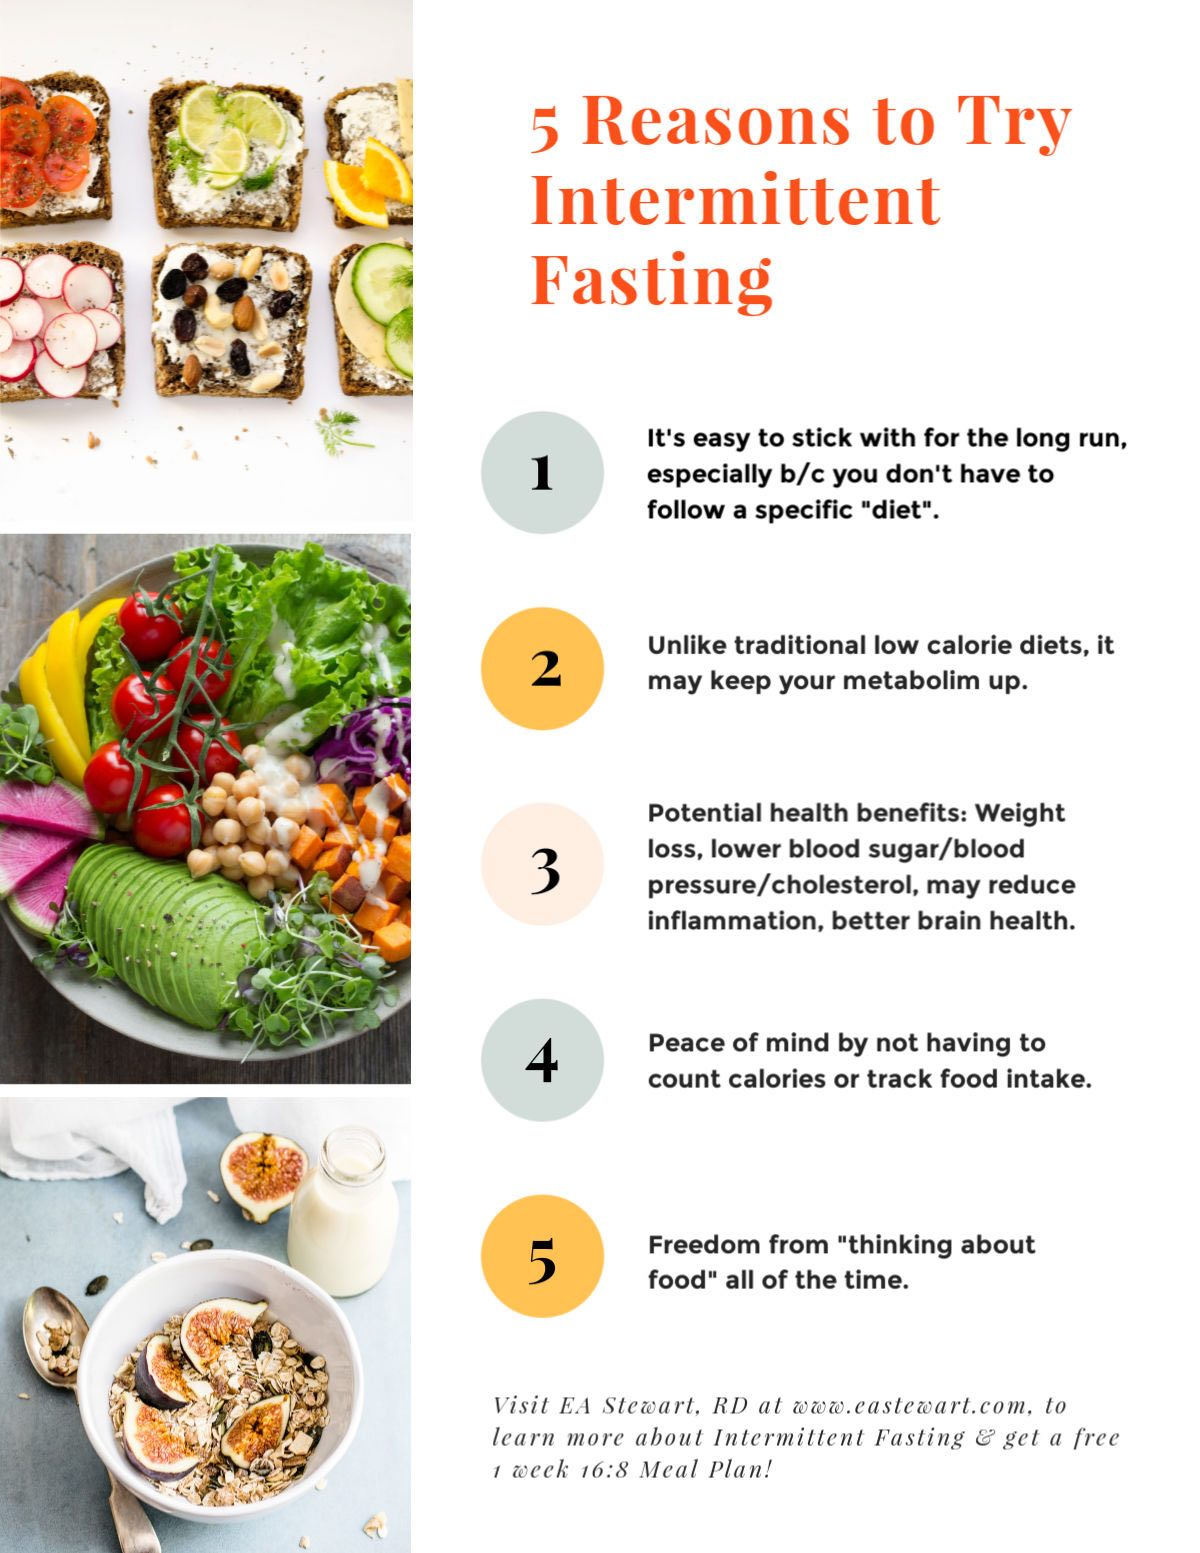 Intermittent Fasting 101 A Free 16 8 Meal Plan Ea Stewart Spicy Rd Nutrition